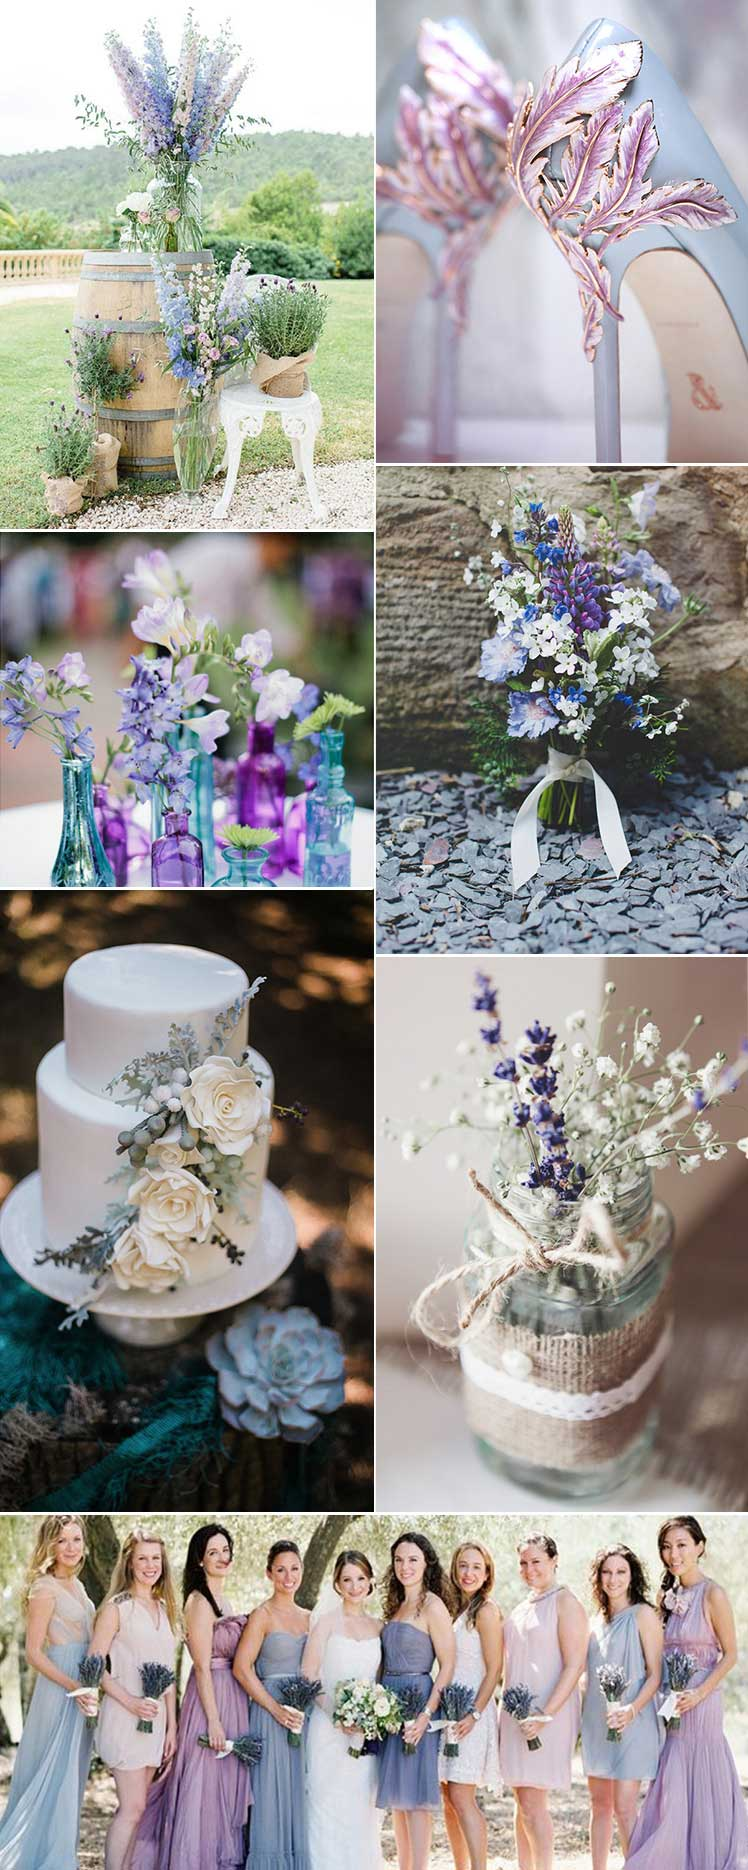 Lilac and Blue themed wedding ideas